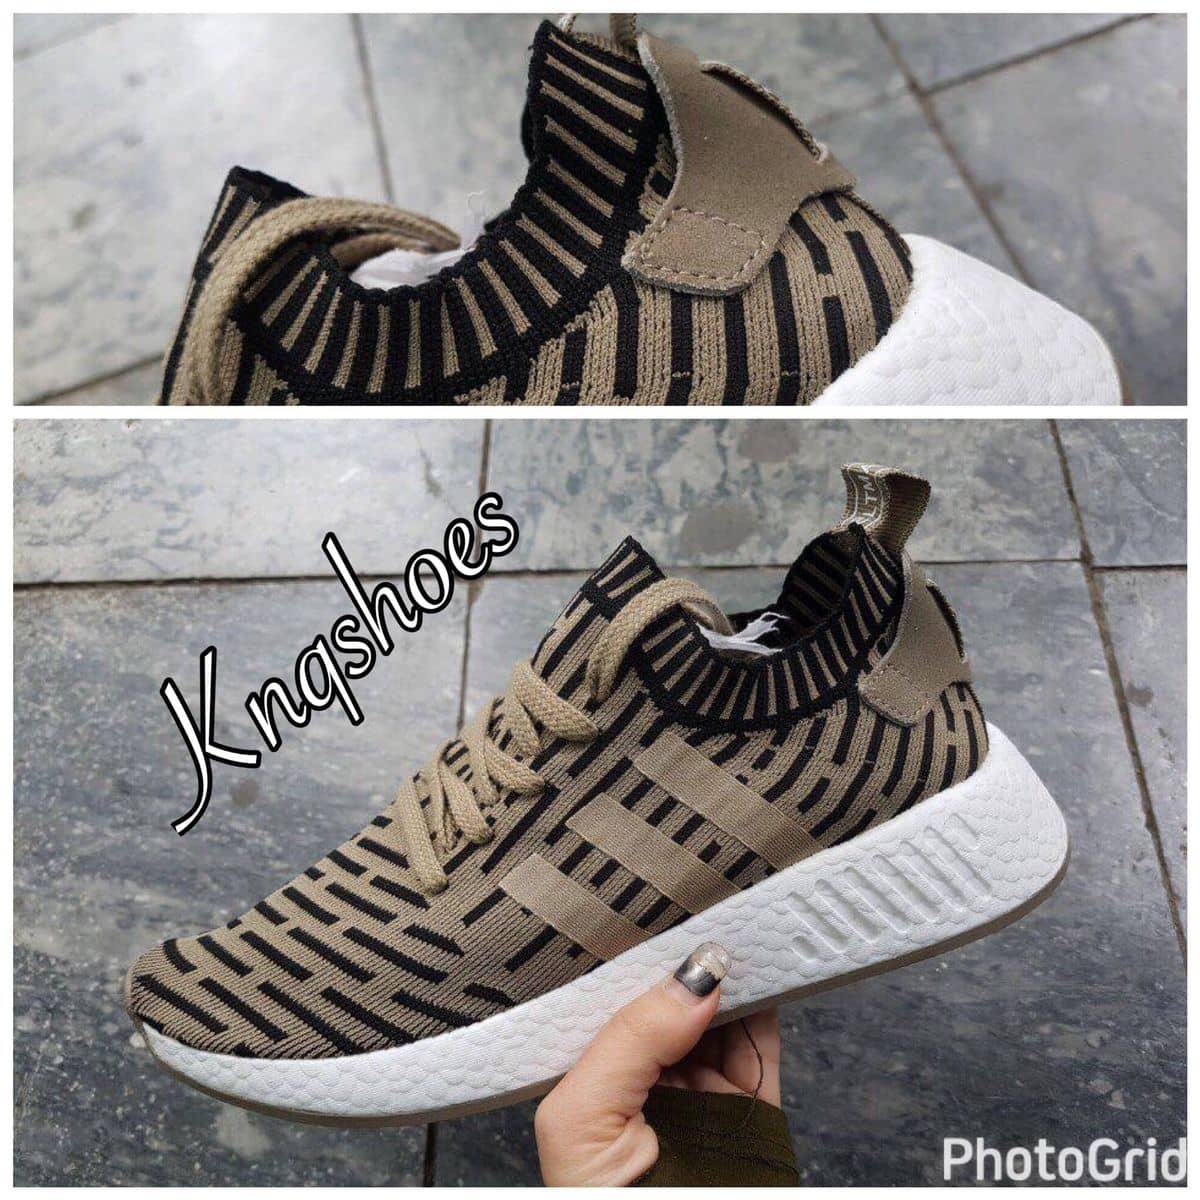 Adidas Nmd R2 Pk Black Wm Size 9.5(men 8.5)Ultra Boost BA7239